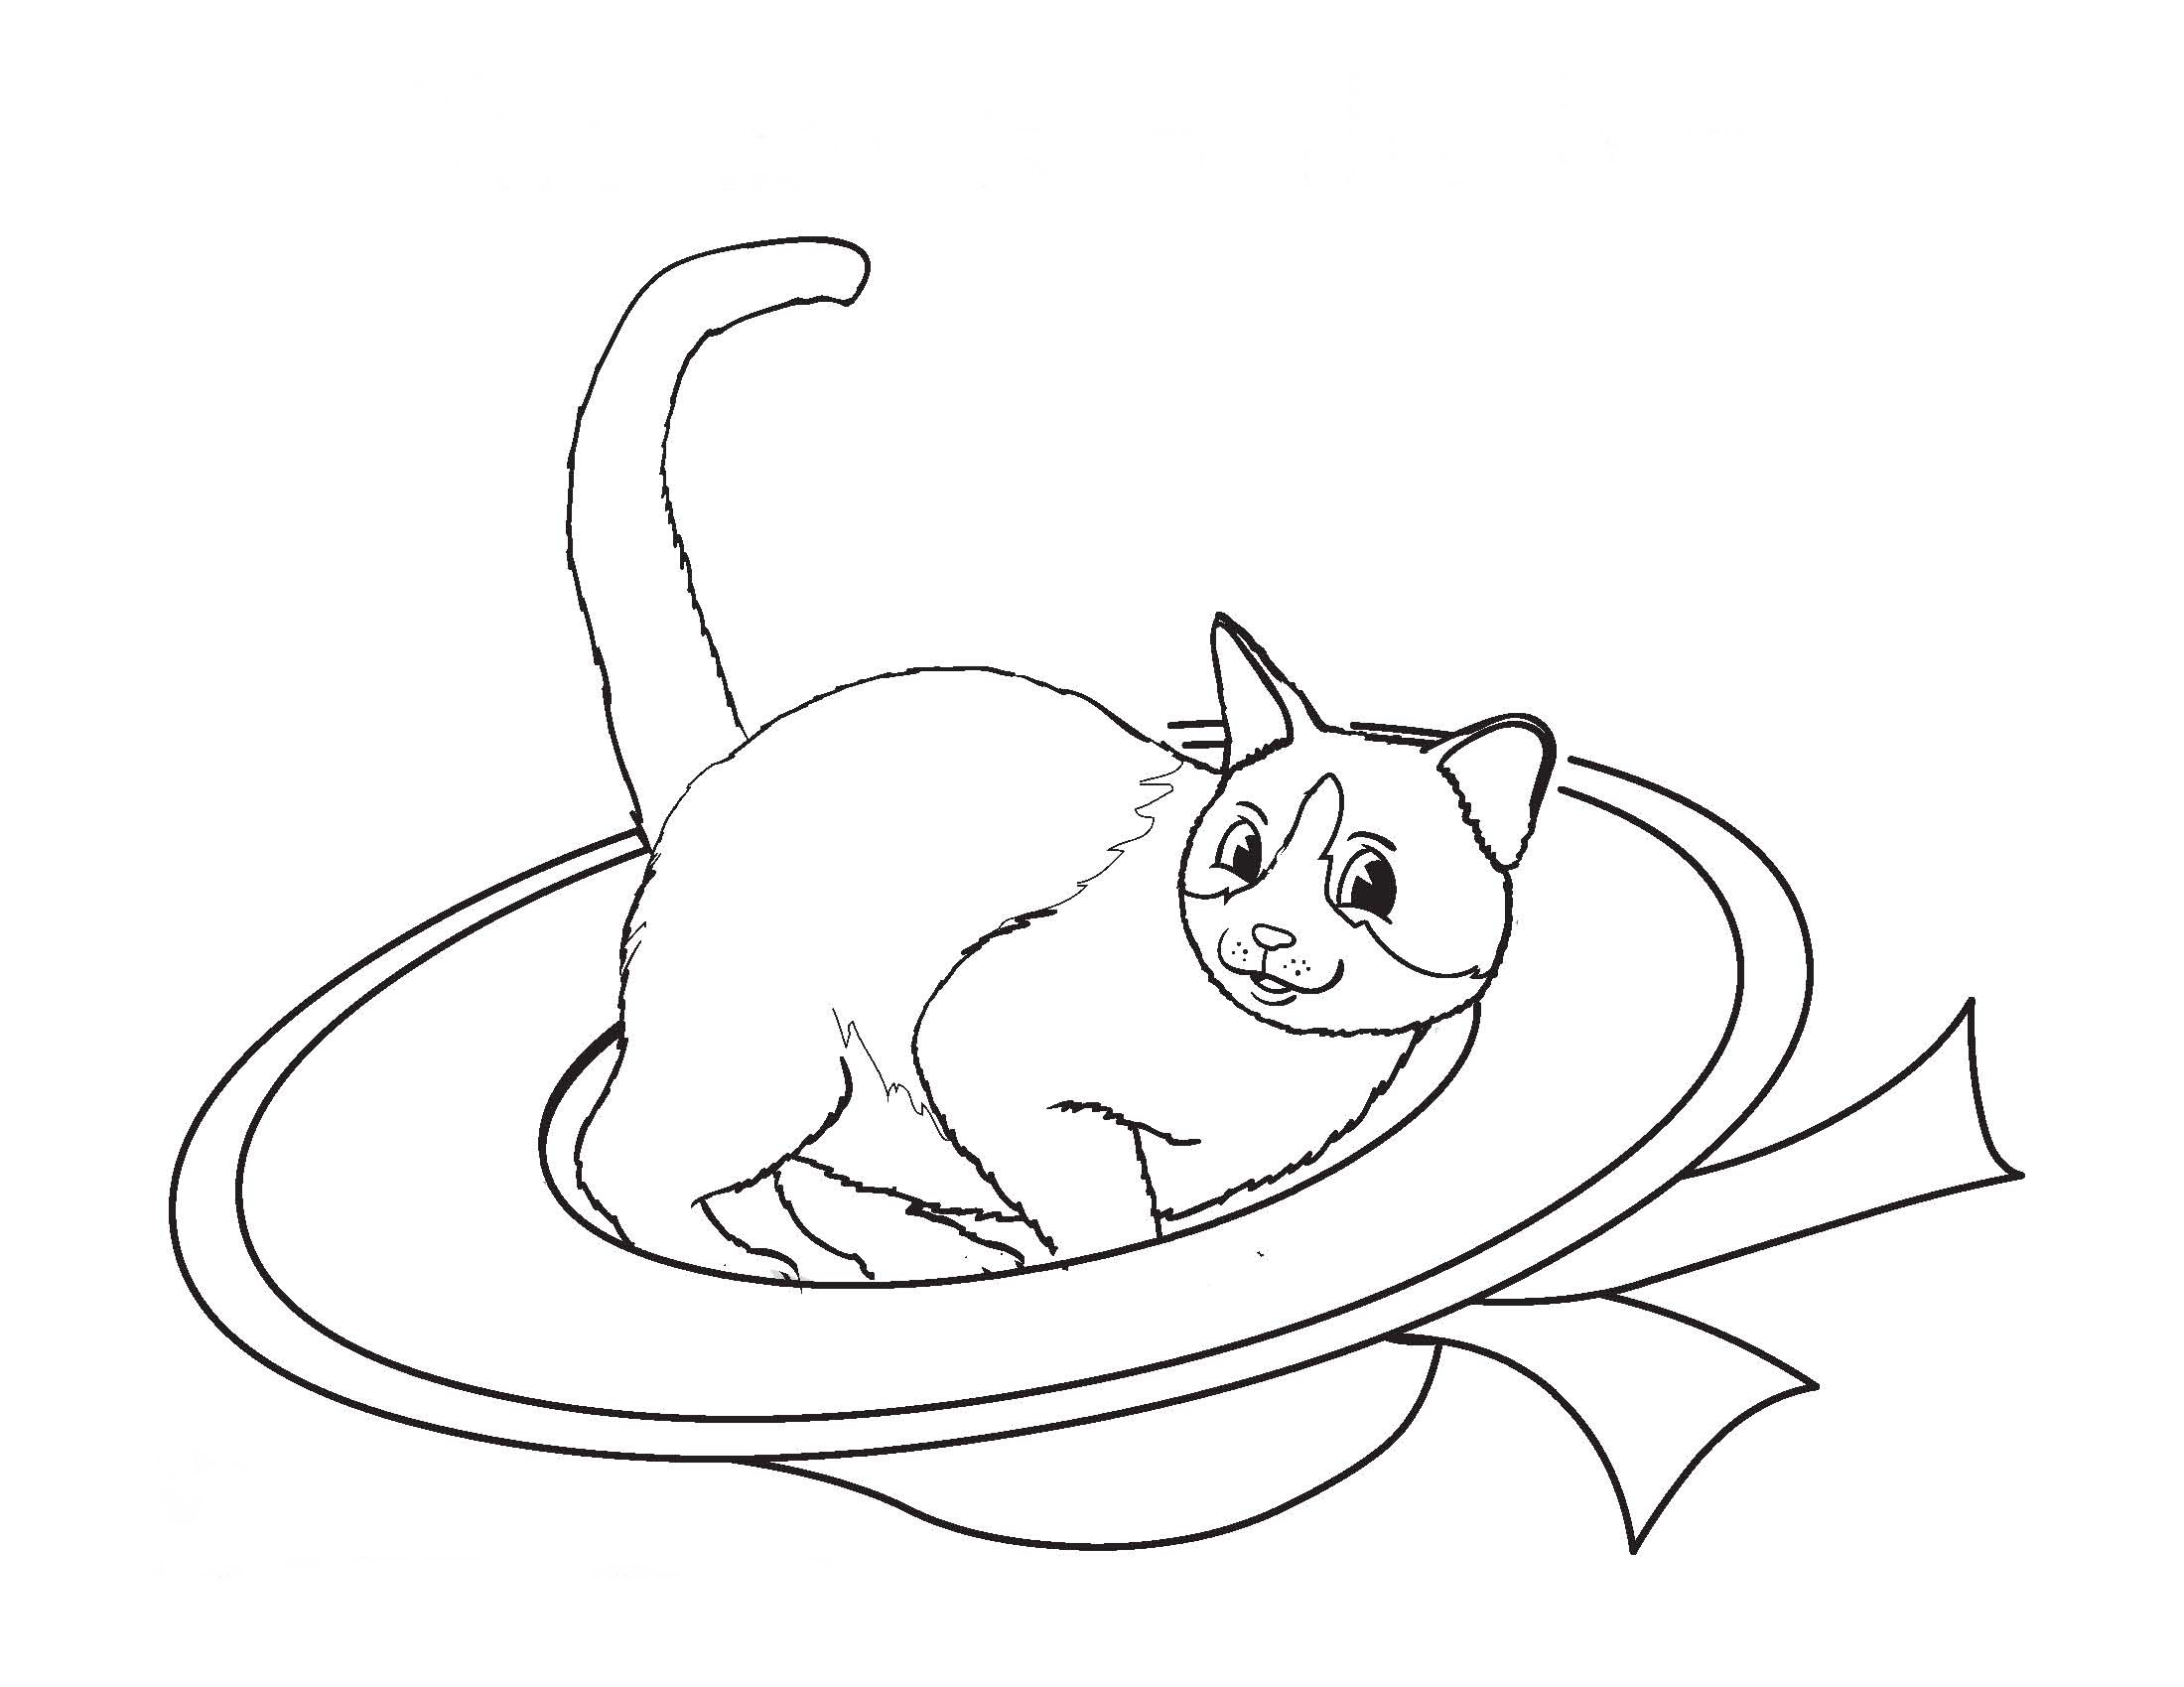 cat birthday coloring pages - photo#38